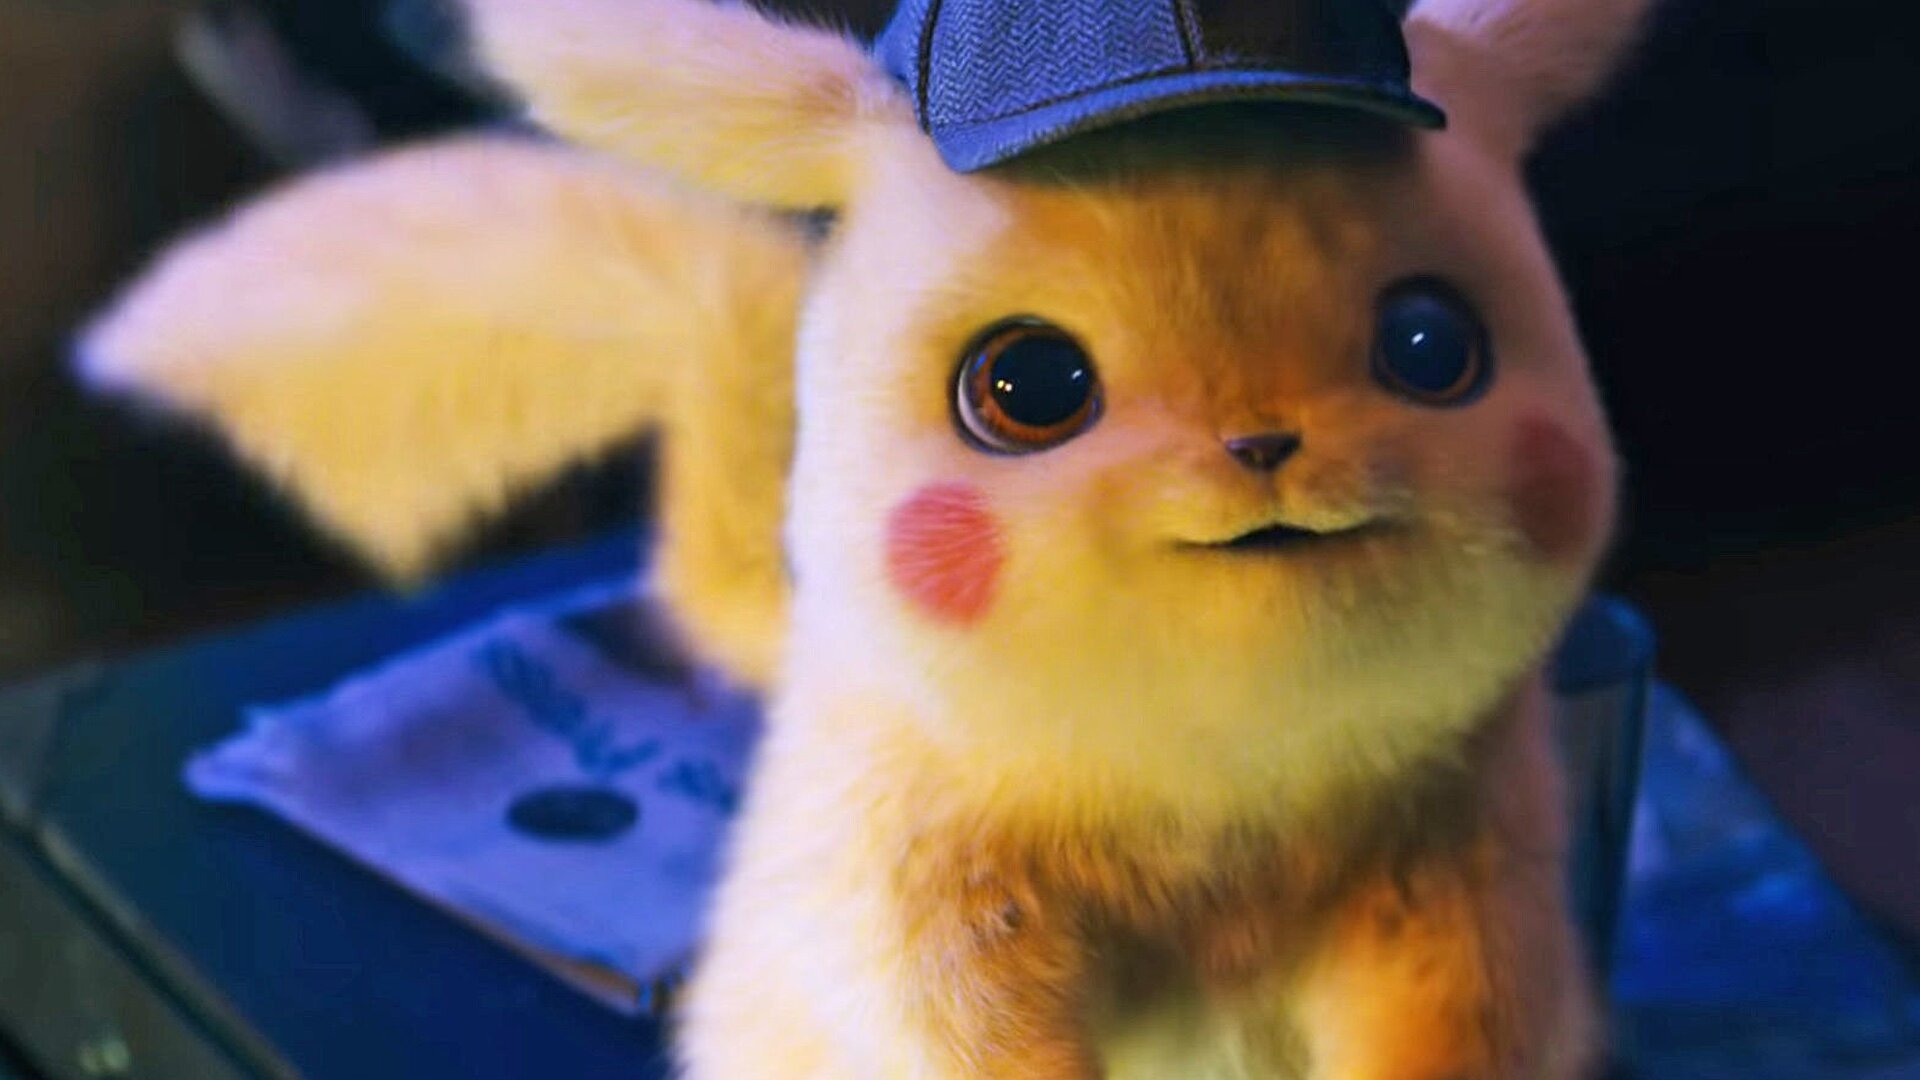 get-ready-poka-fans-the-honest-trailers-for-detective-pikachu-is-here-social.jpg